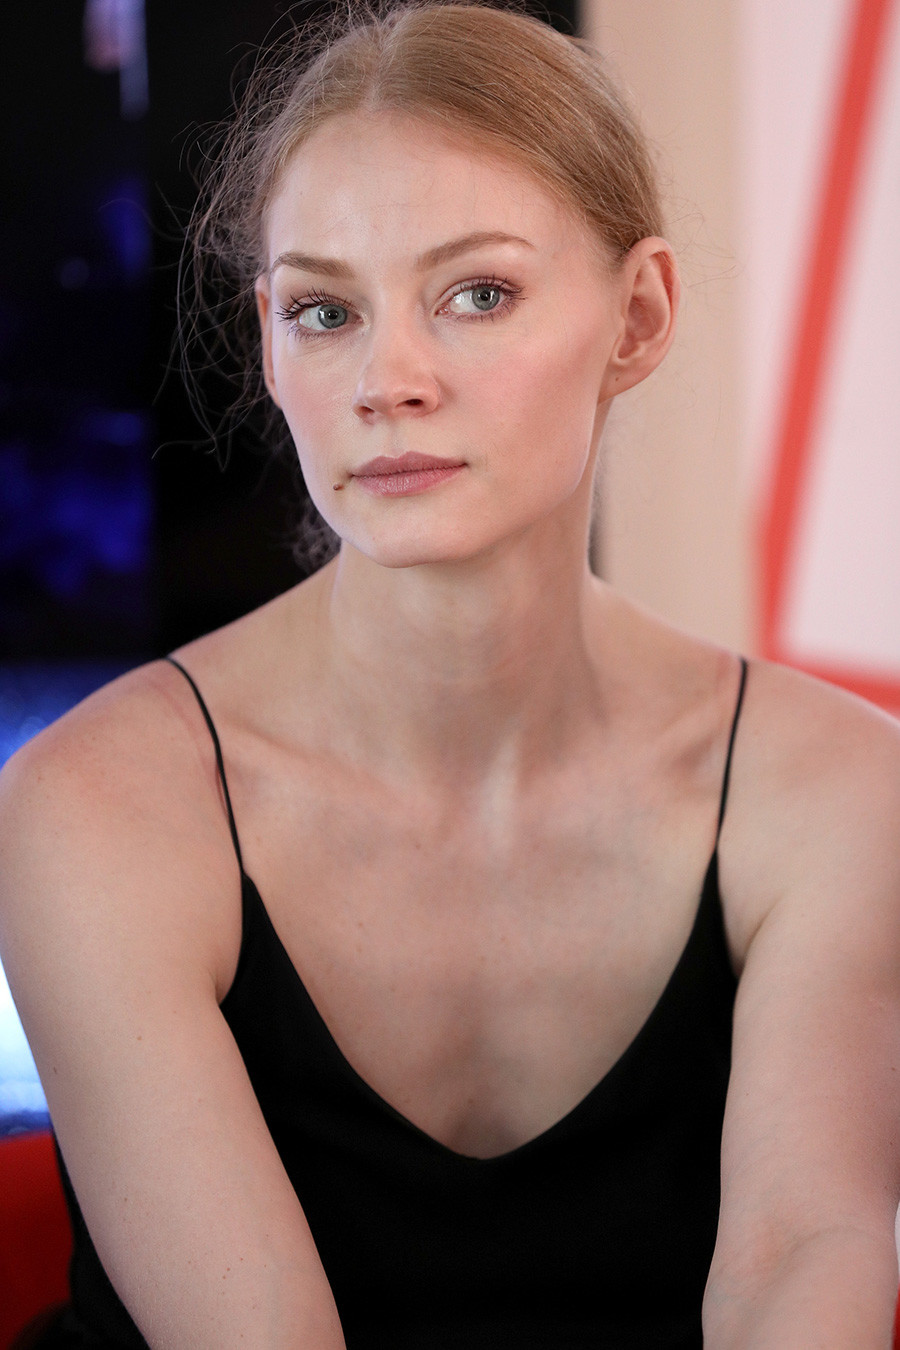 Actress Svetlana Khodchenkova attends the Roskino Russian pavilion opening at the annual 69th Cannes Film Festival at Russian Pavilion on May 14, 2016 in Cannes, France